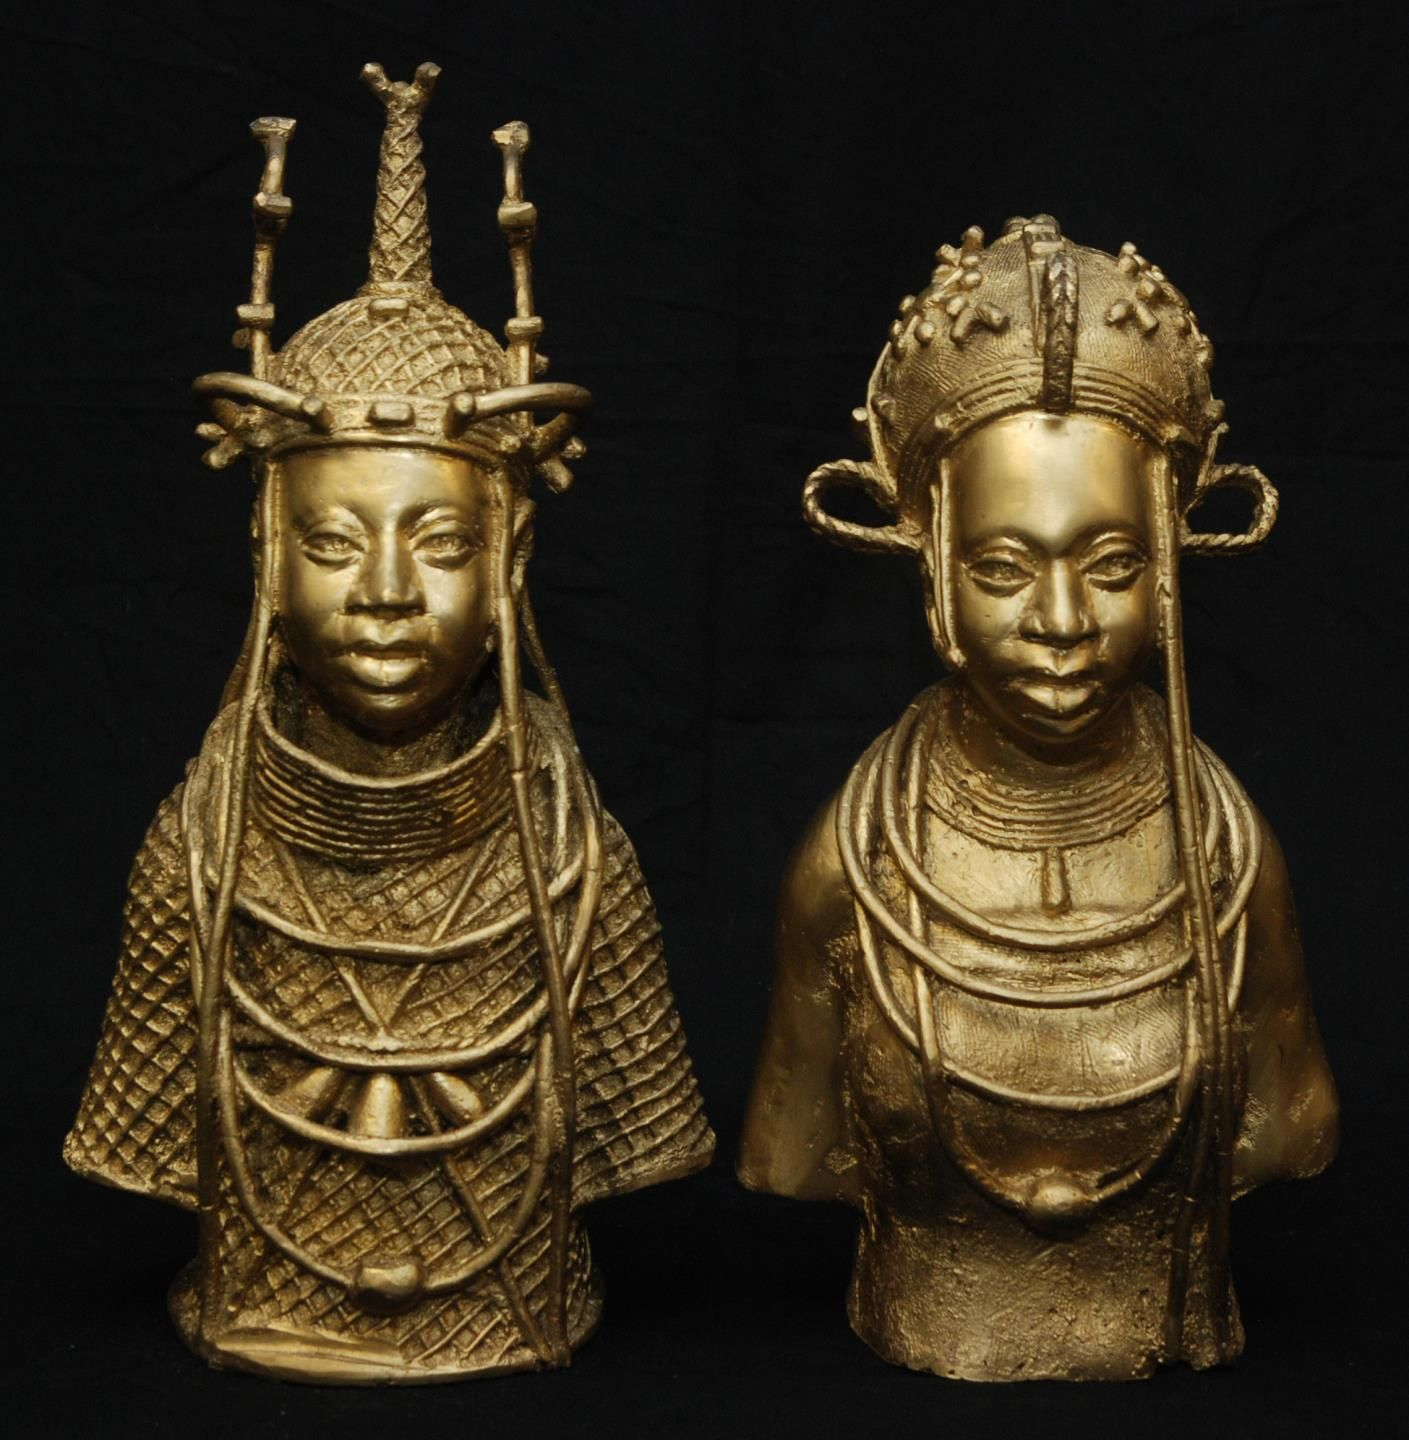 african queen crowns - Google Search | African Crowns ...